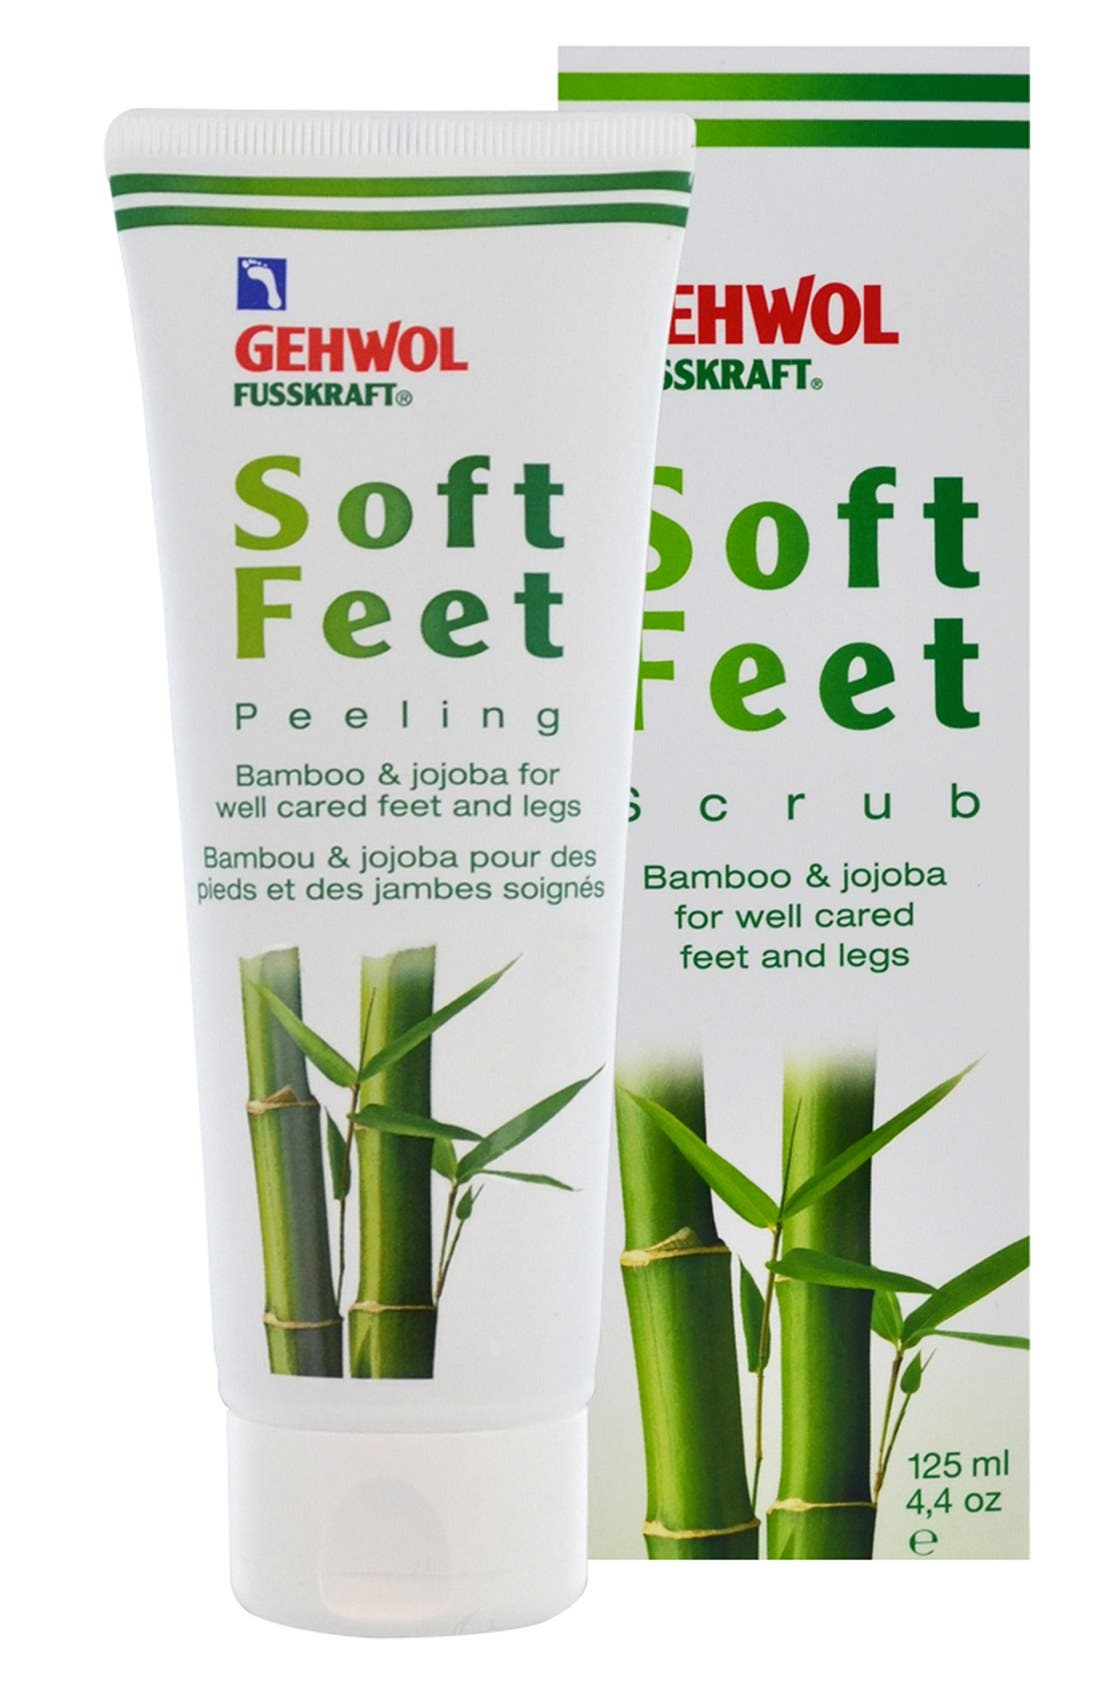 GEHWOL,  FUSSKRAFT<sup>®</sup> 'Soft Feet' Scrub, Alternate thumbnail 2, color, NO COLOR